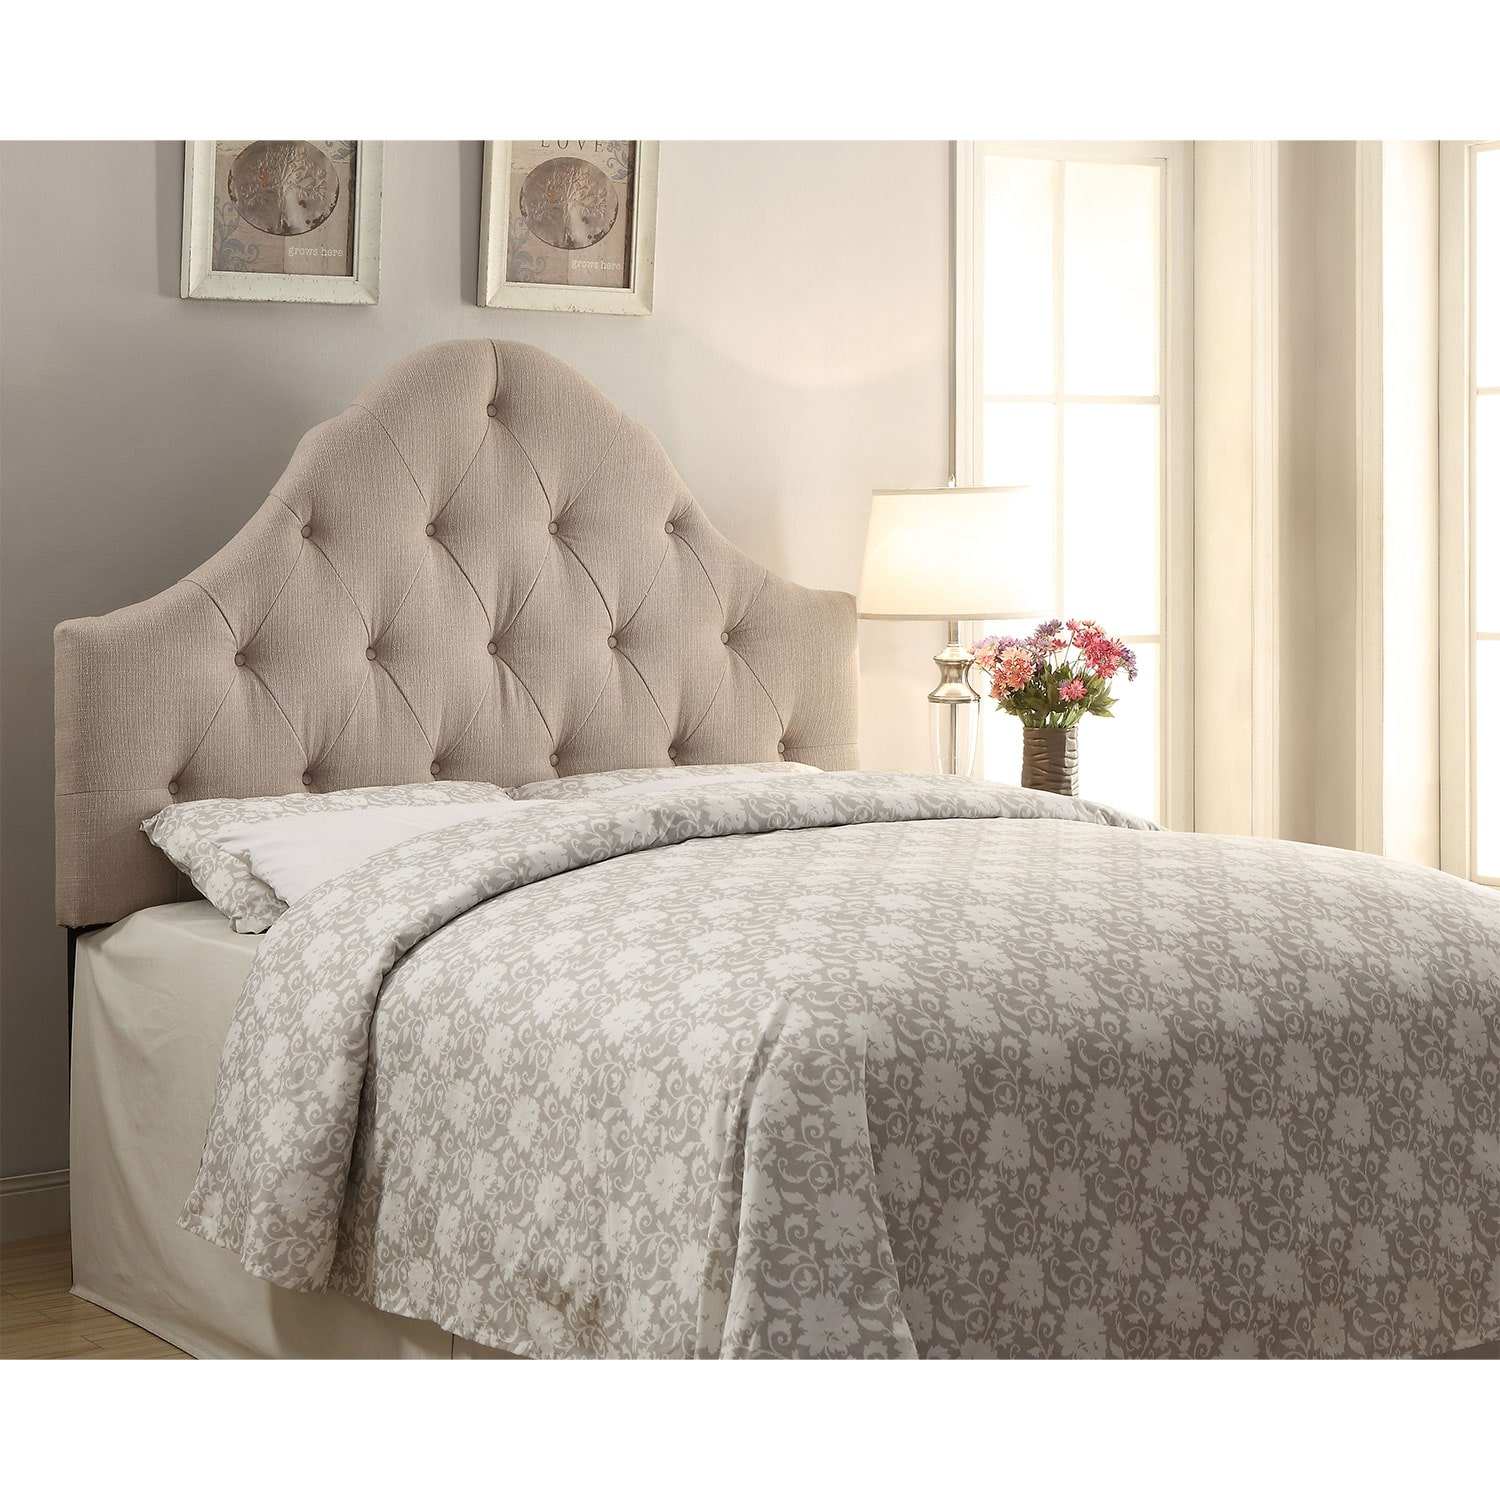 Brittany Full/Queen Headboard - Tan